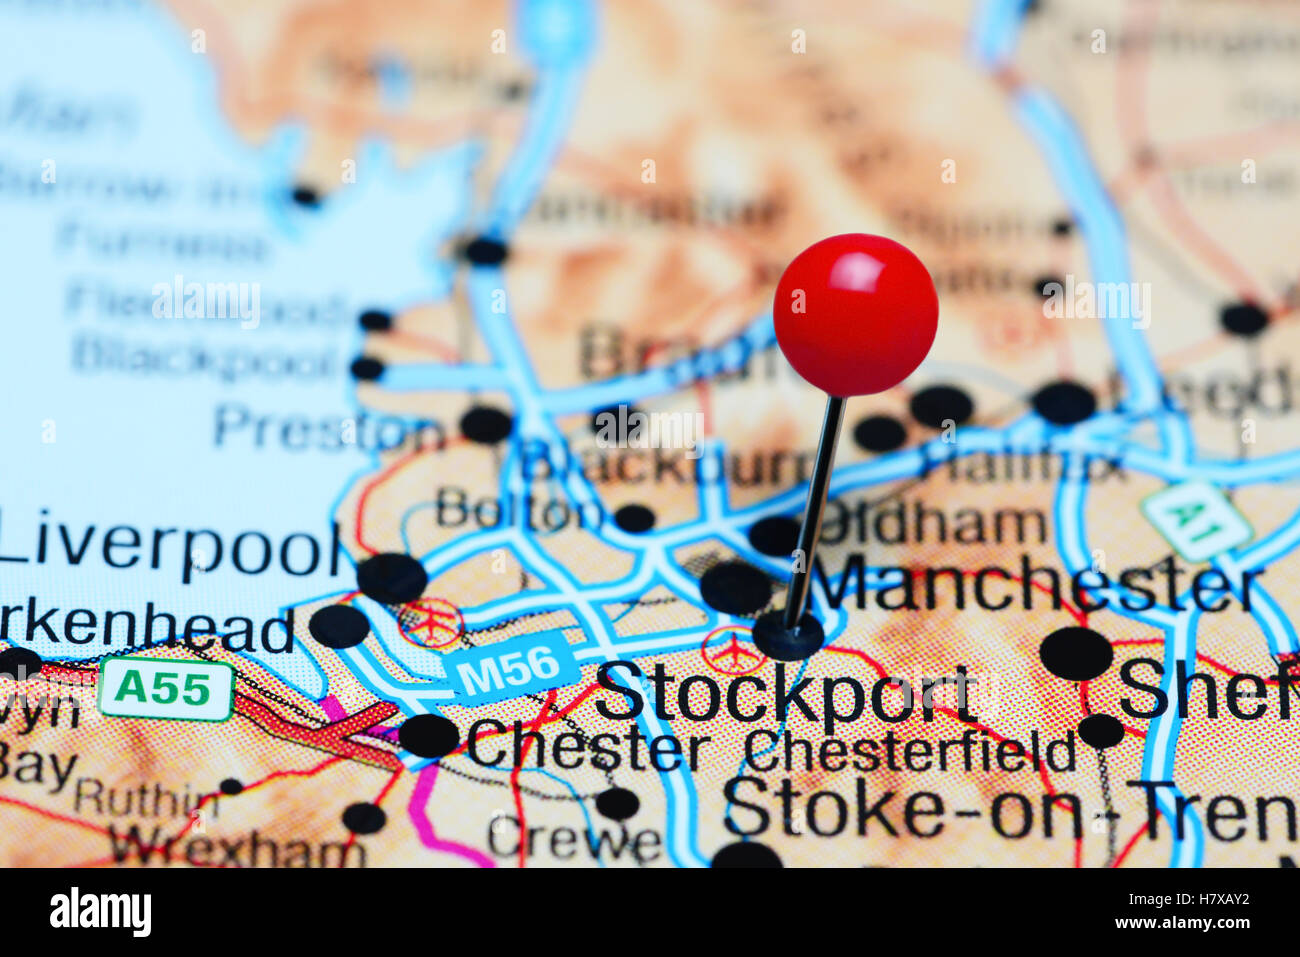 Stockport pinned on a map of UK Stock Photo Royalty Free Image